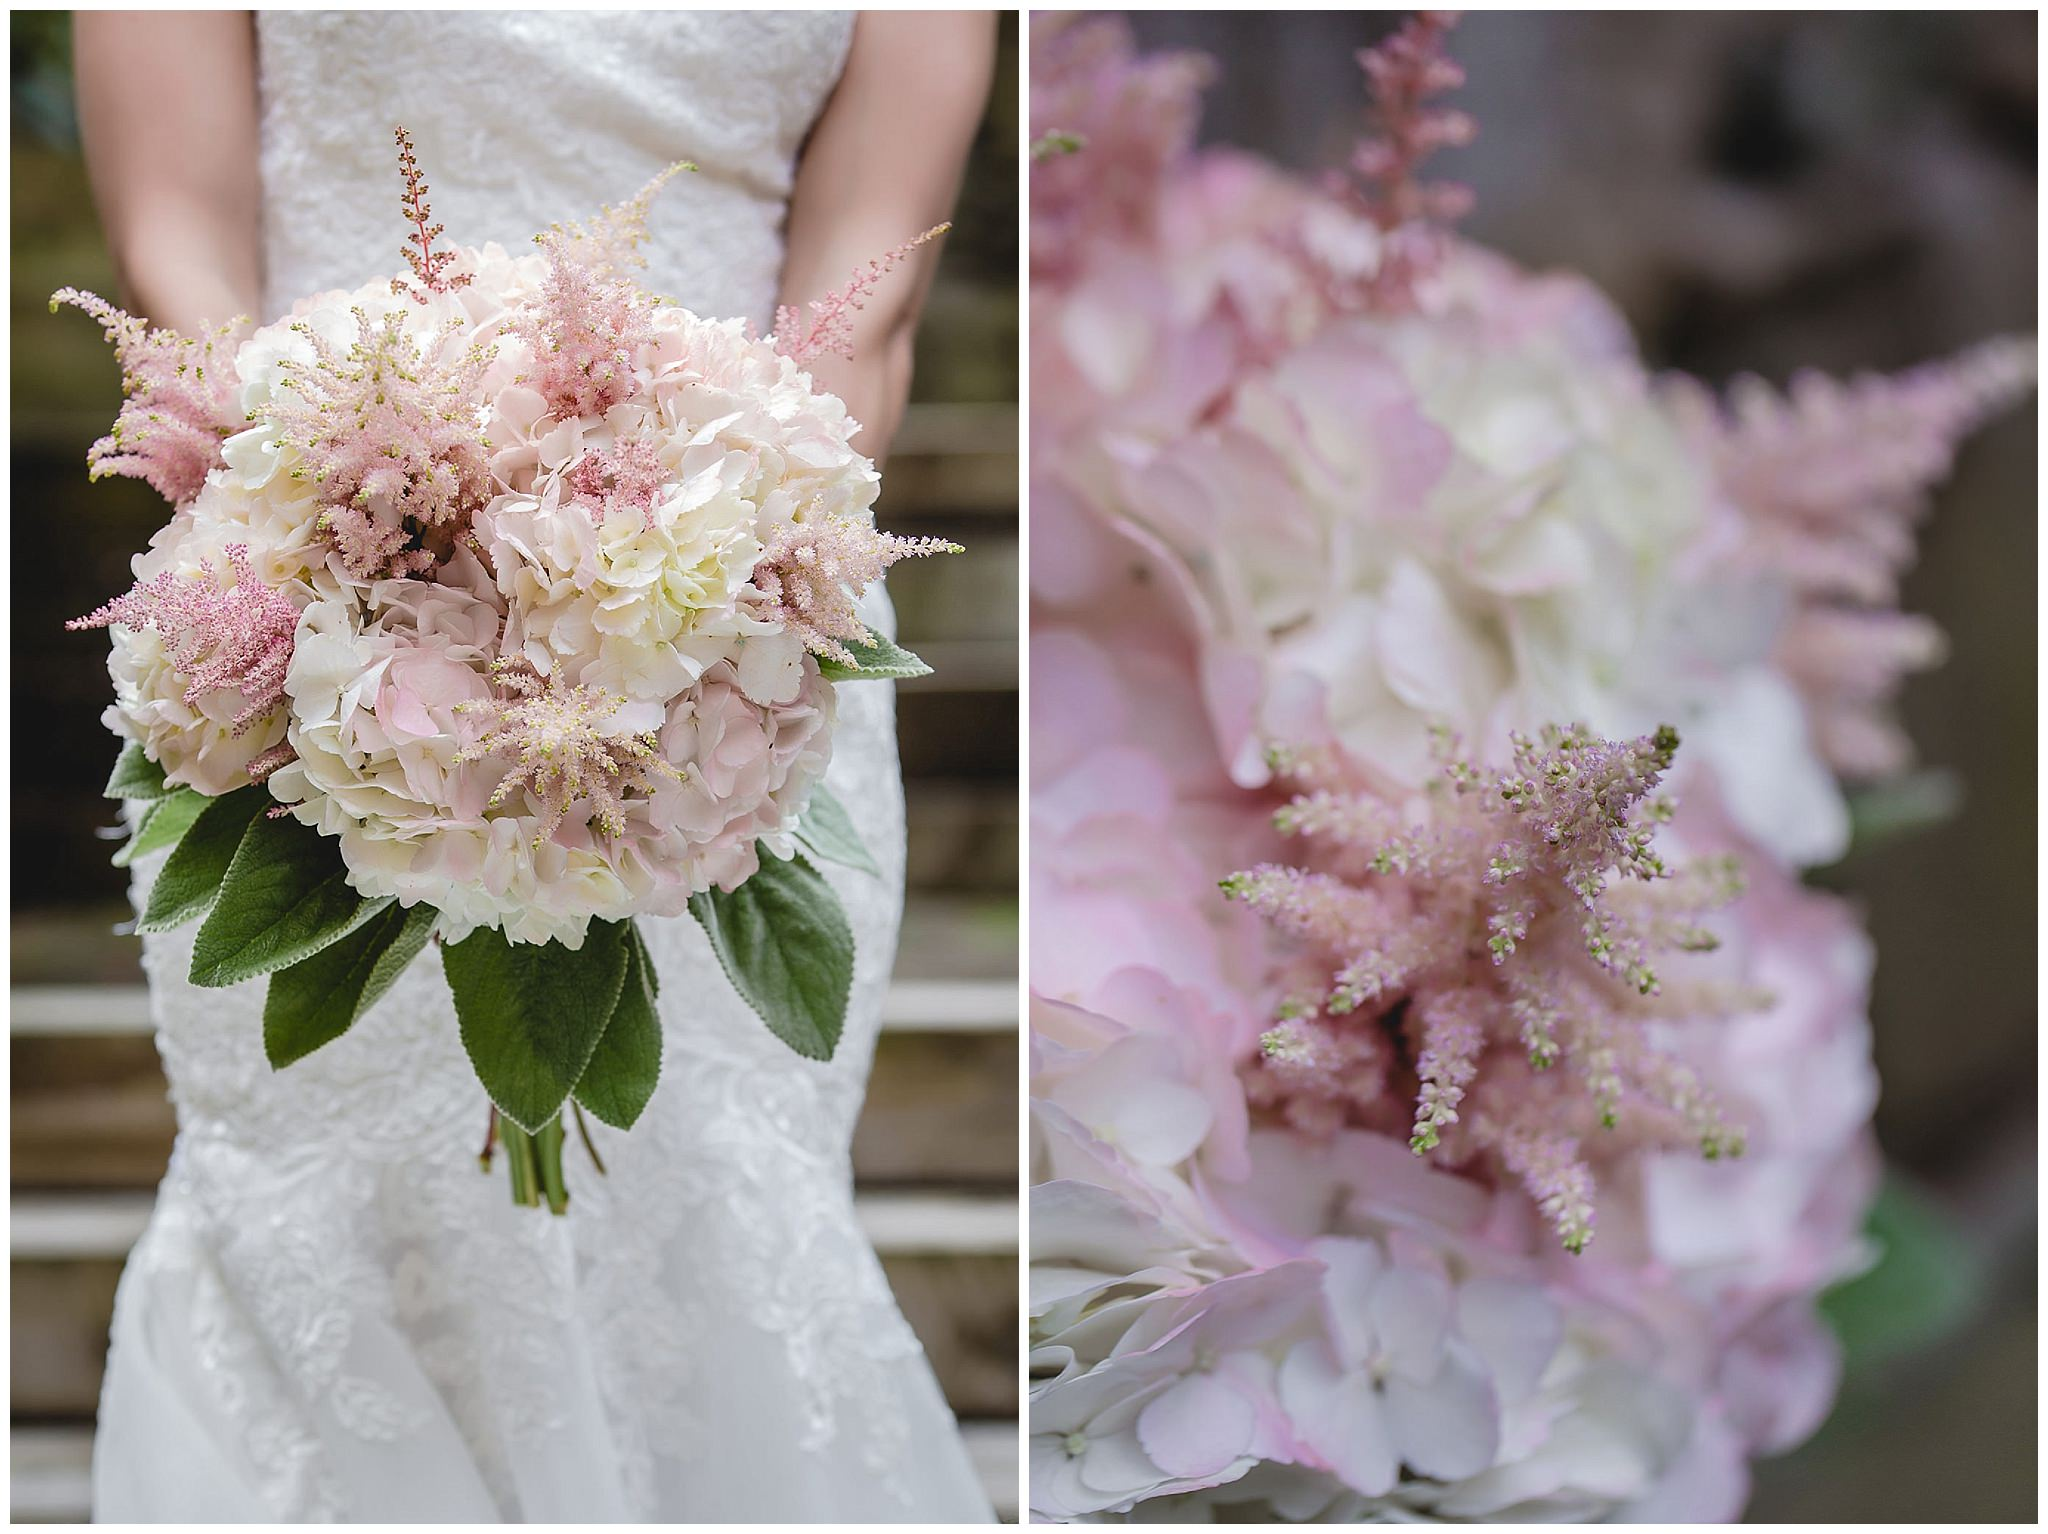 Bridal bouquet of pink and white hydrangeas